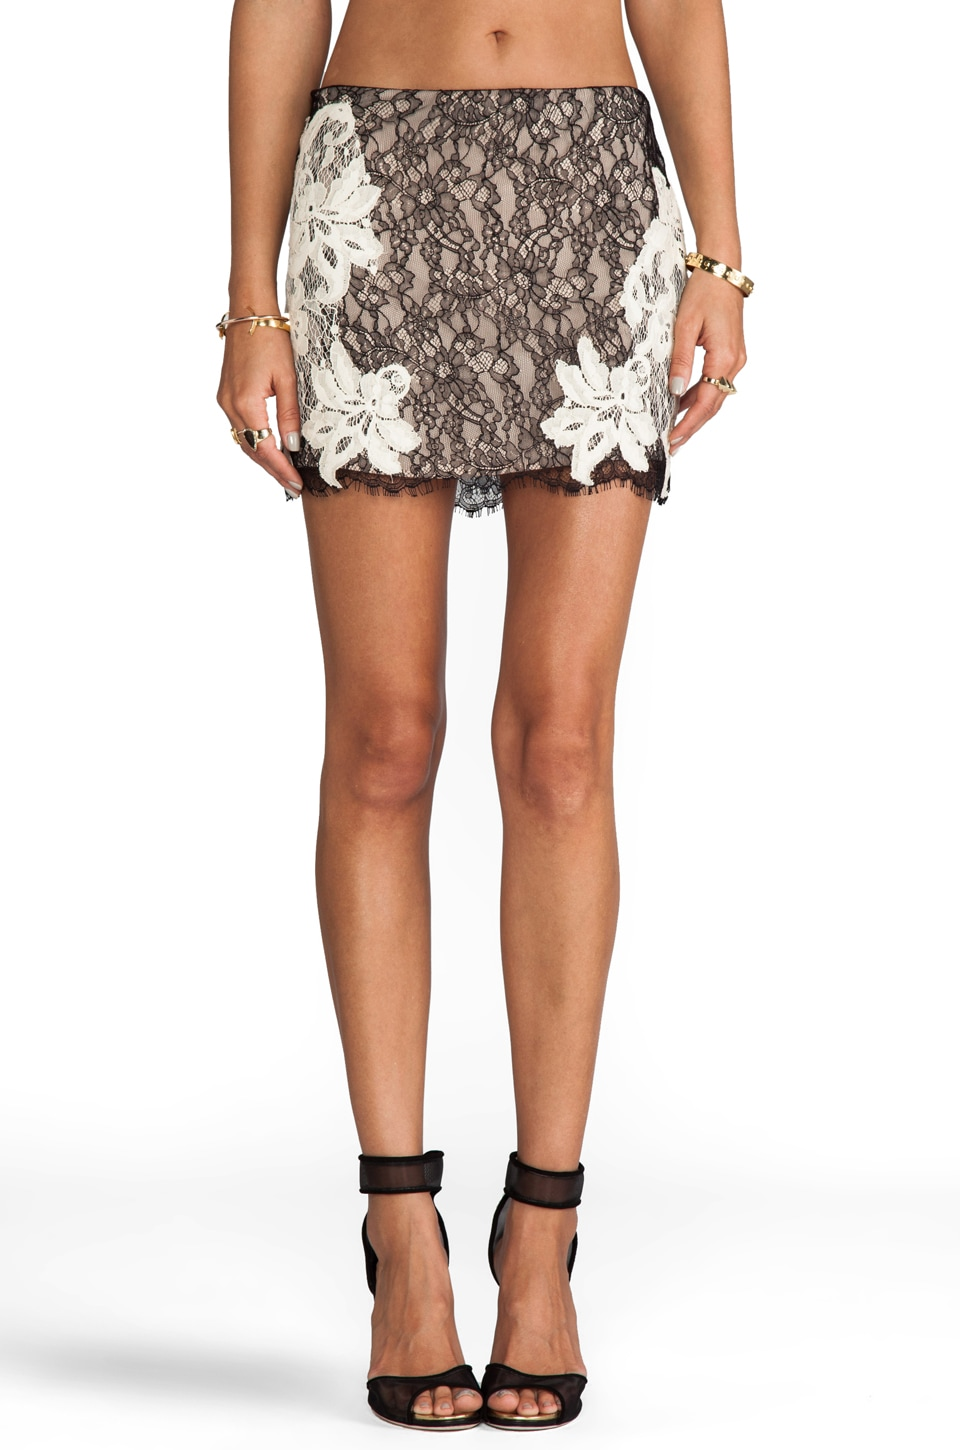 Haute Hippie Lace Mini Skirt in Black/Swan